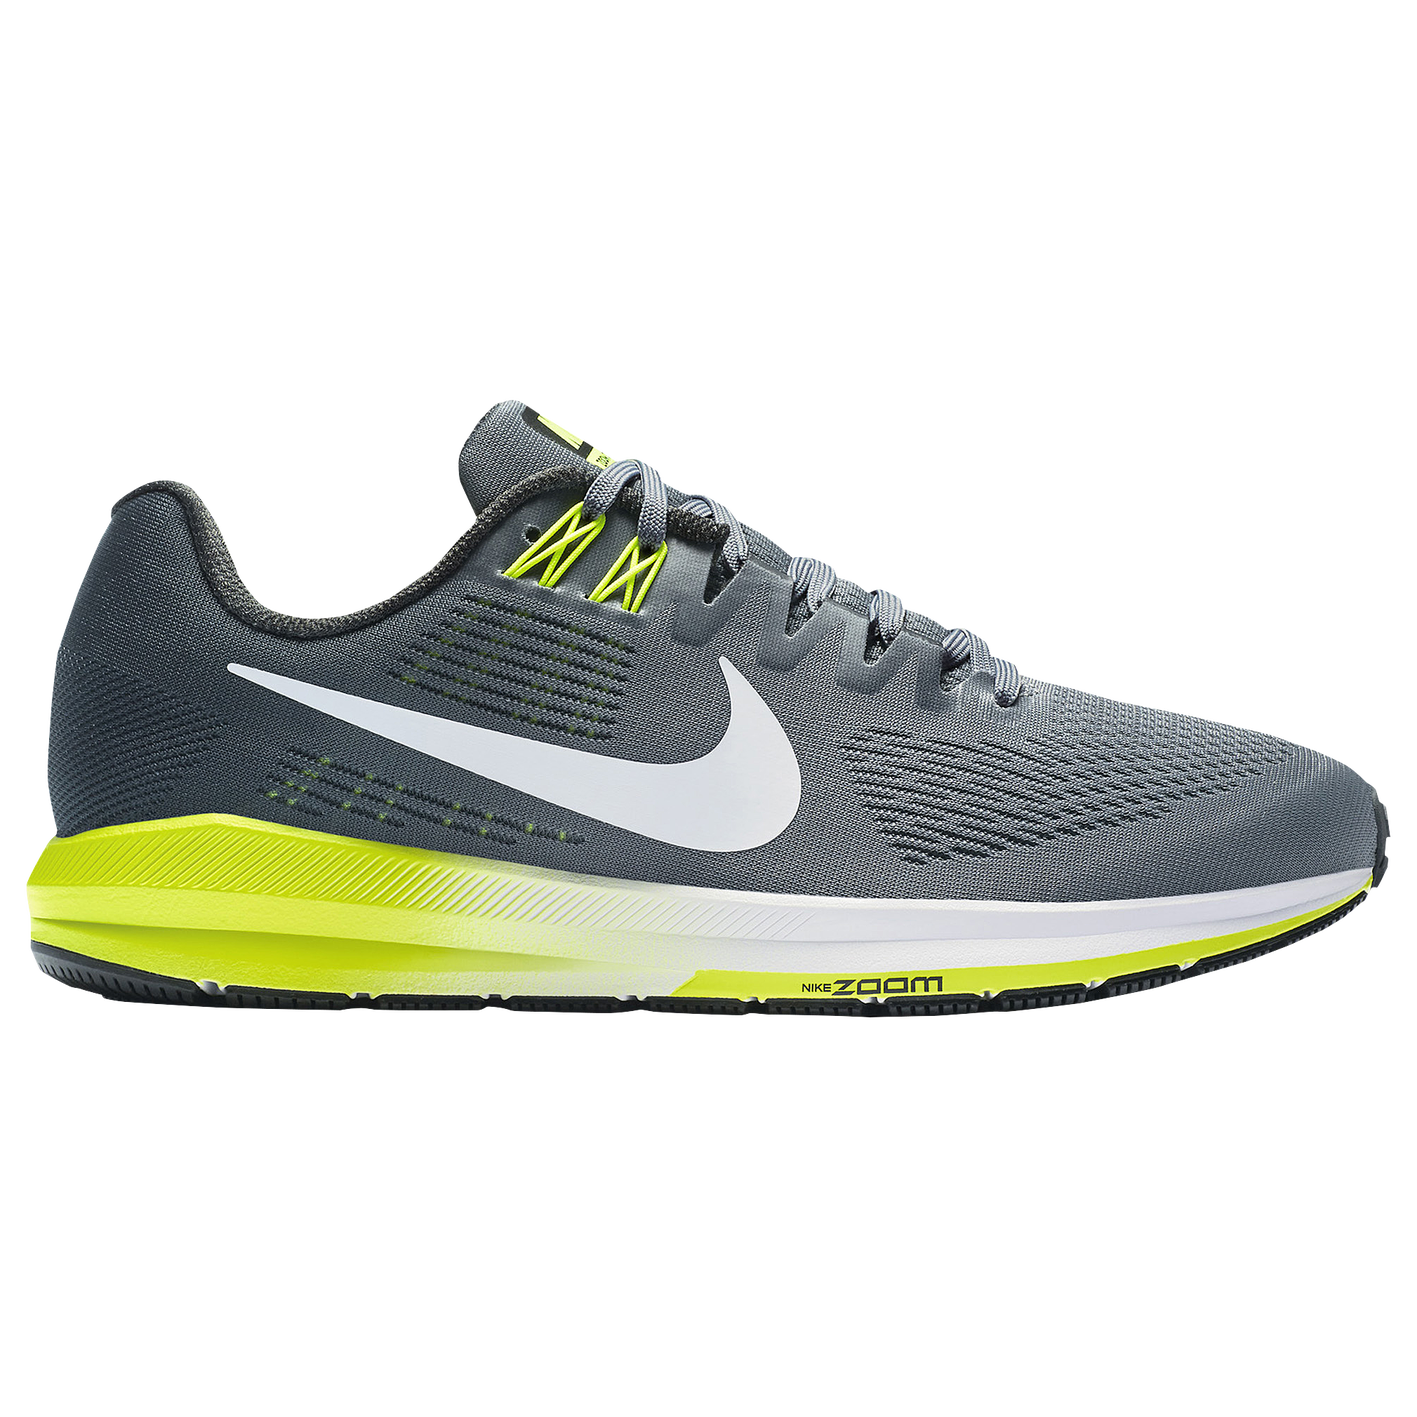 check out 5f77b 9e769 Nike Air Zoom Structure 21 - Men s.  99.99 -  119.99. Product    04696007.  Selected Style  Cool Grey White Anthracite Volt   Width ...